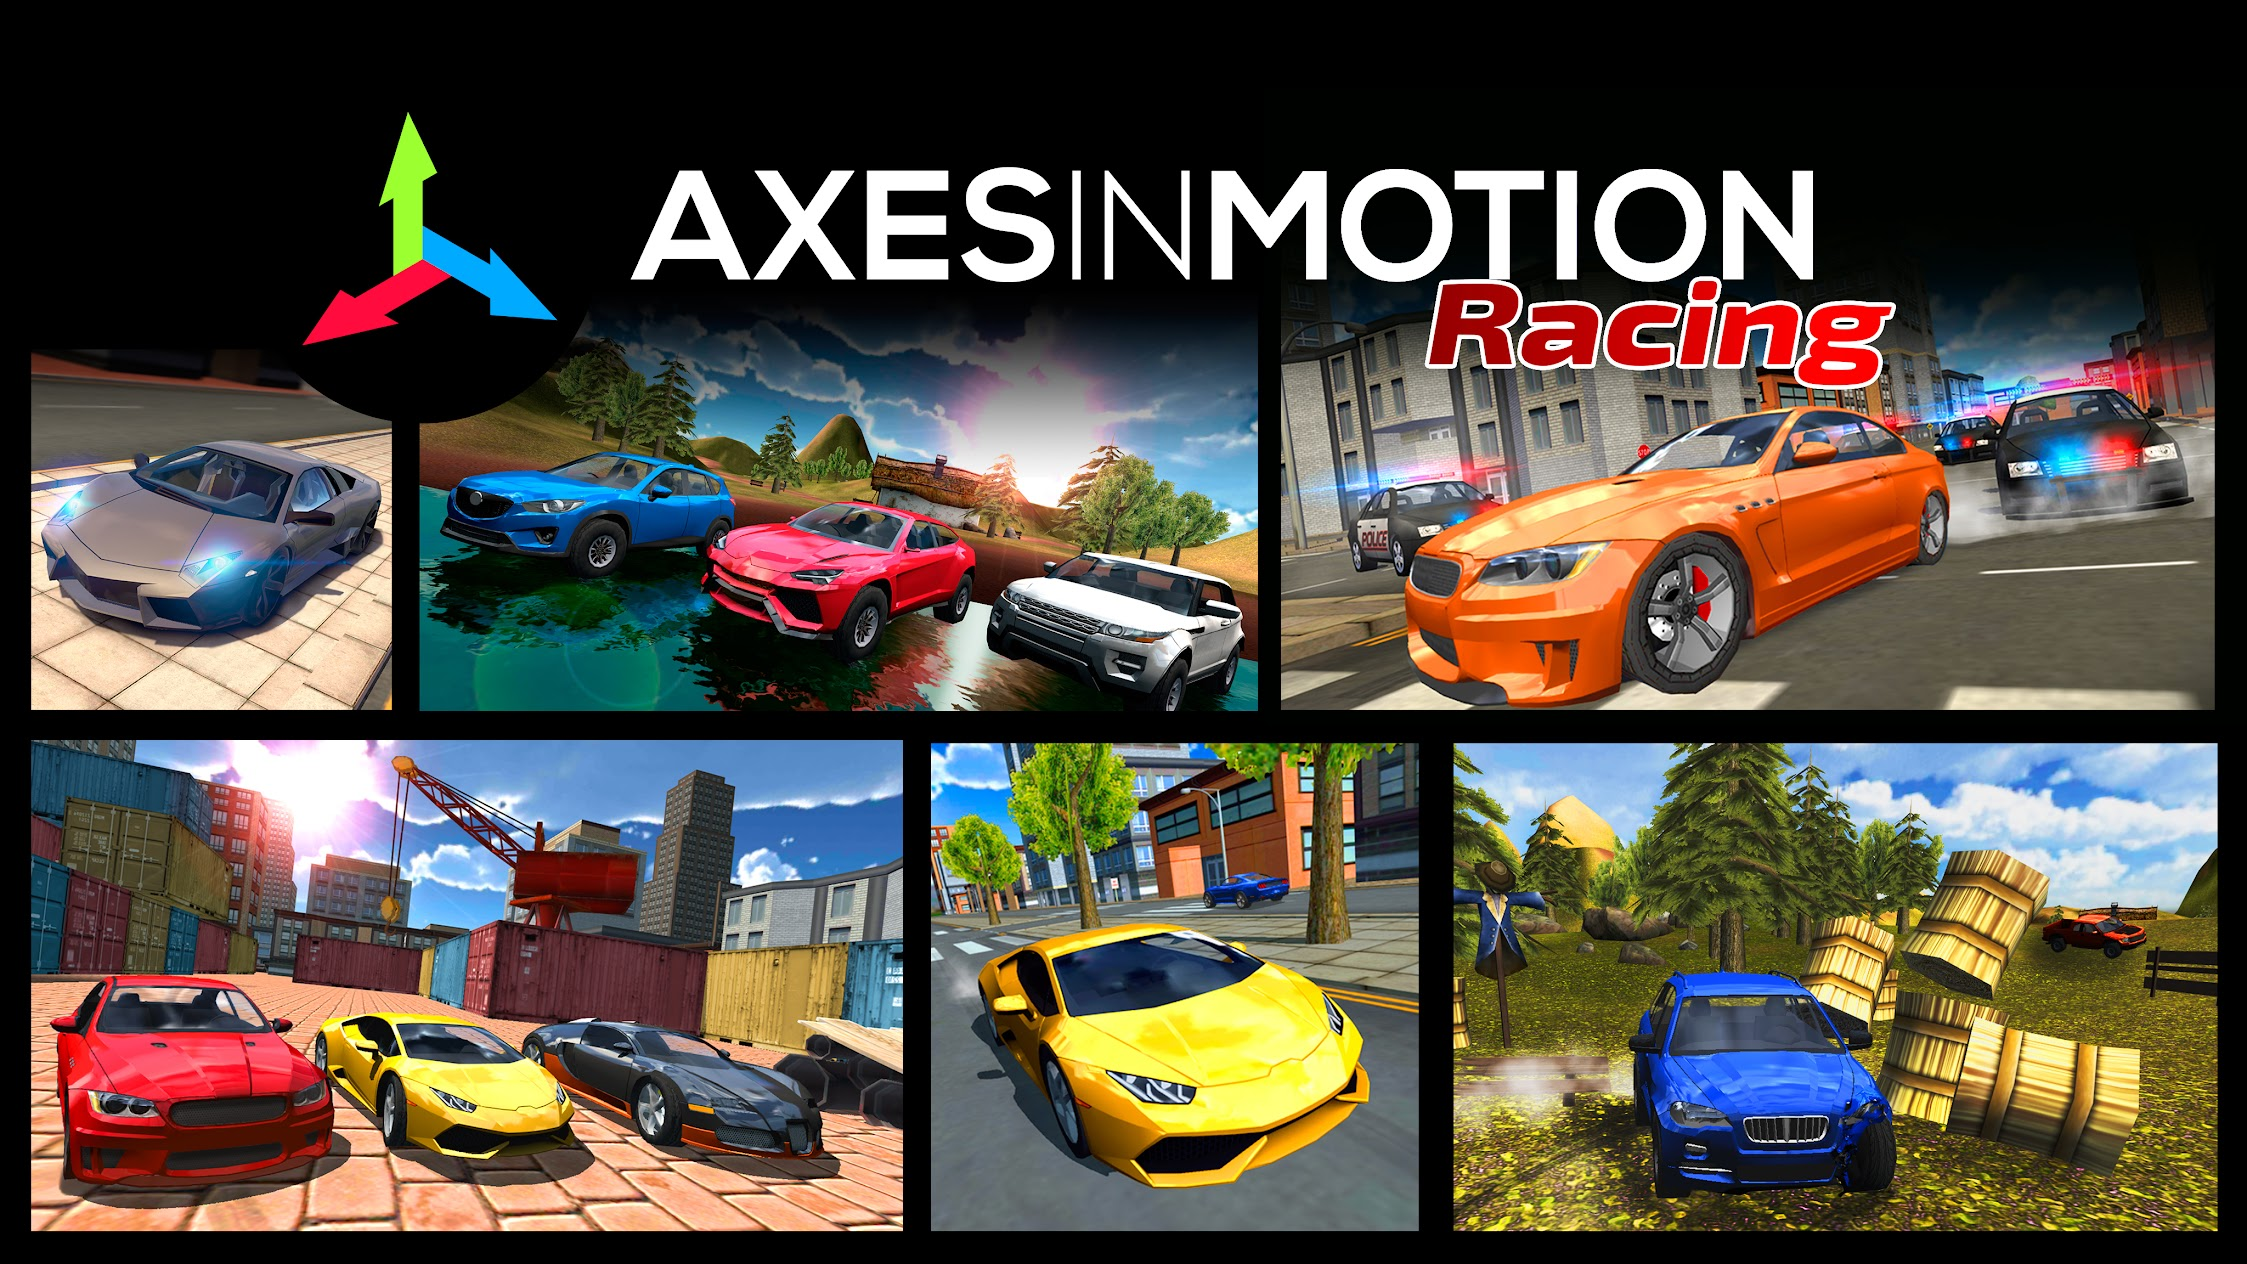 AxesInMotion Racing